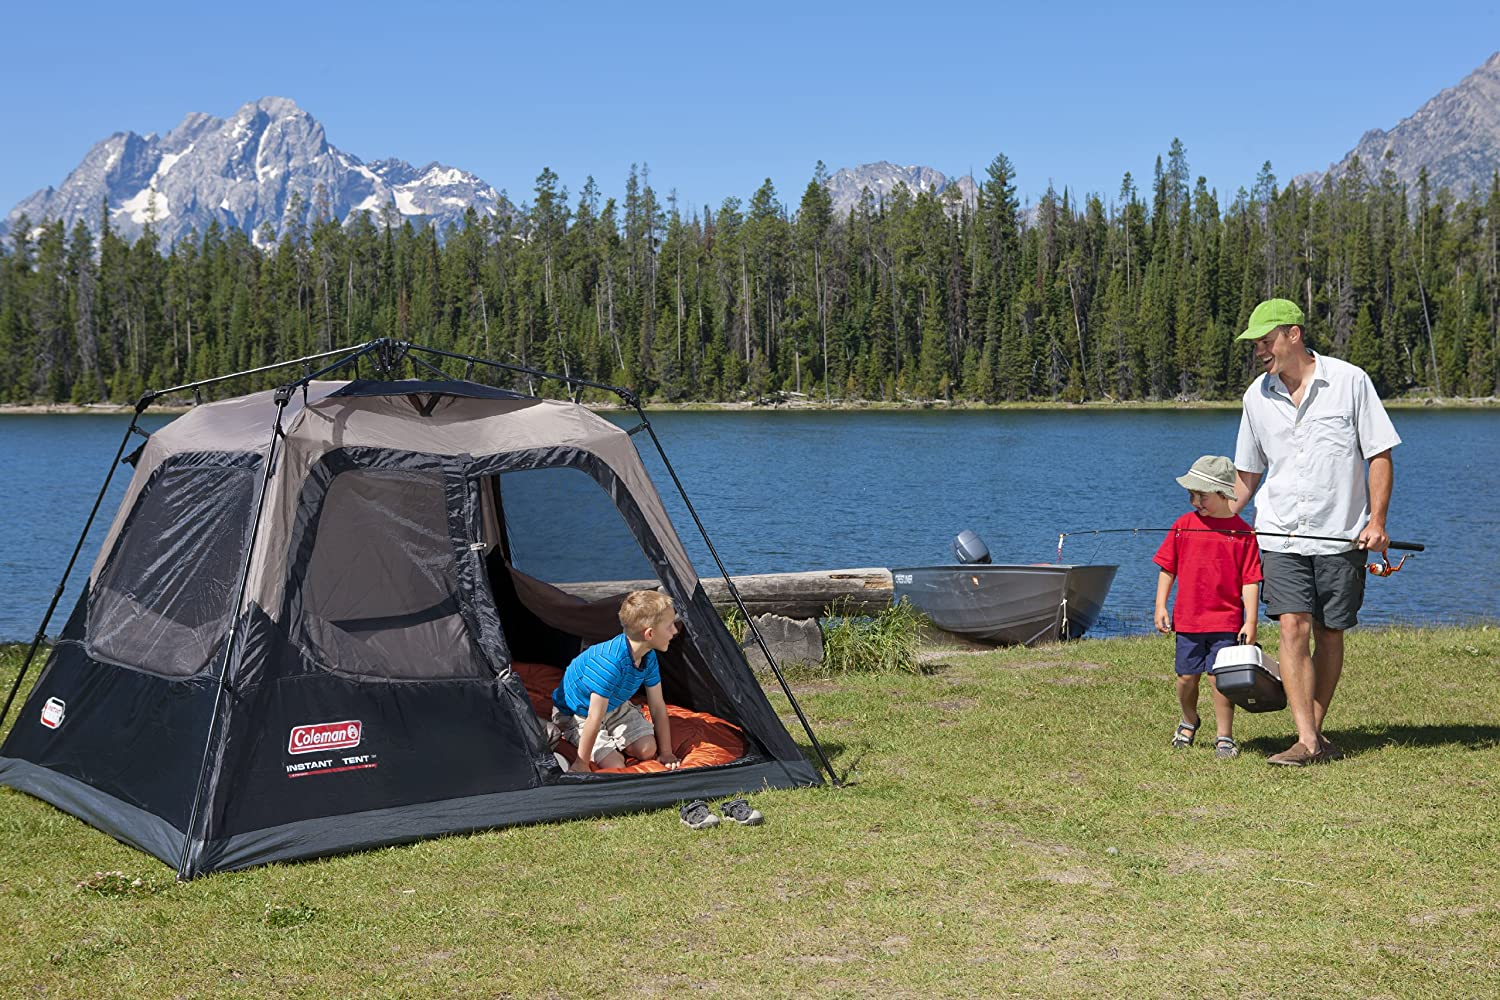 coleman instant tent & Coleman 4 Person Instant Tent Review - Traveling Monarch